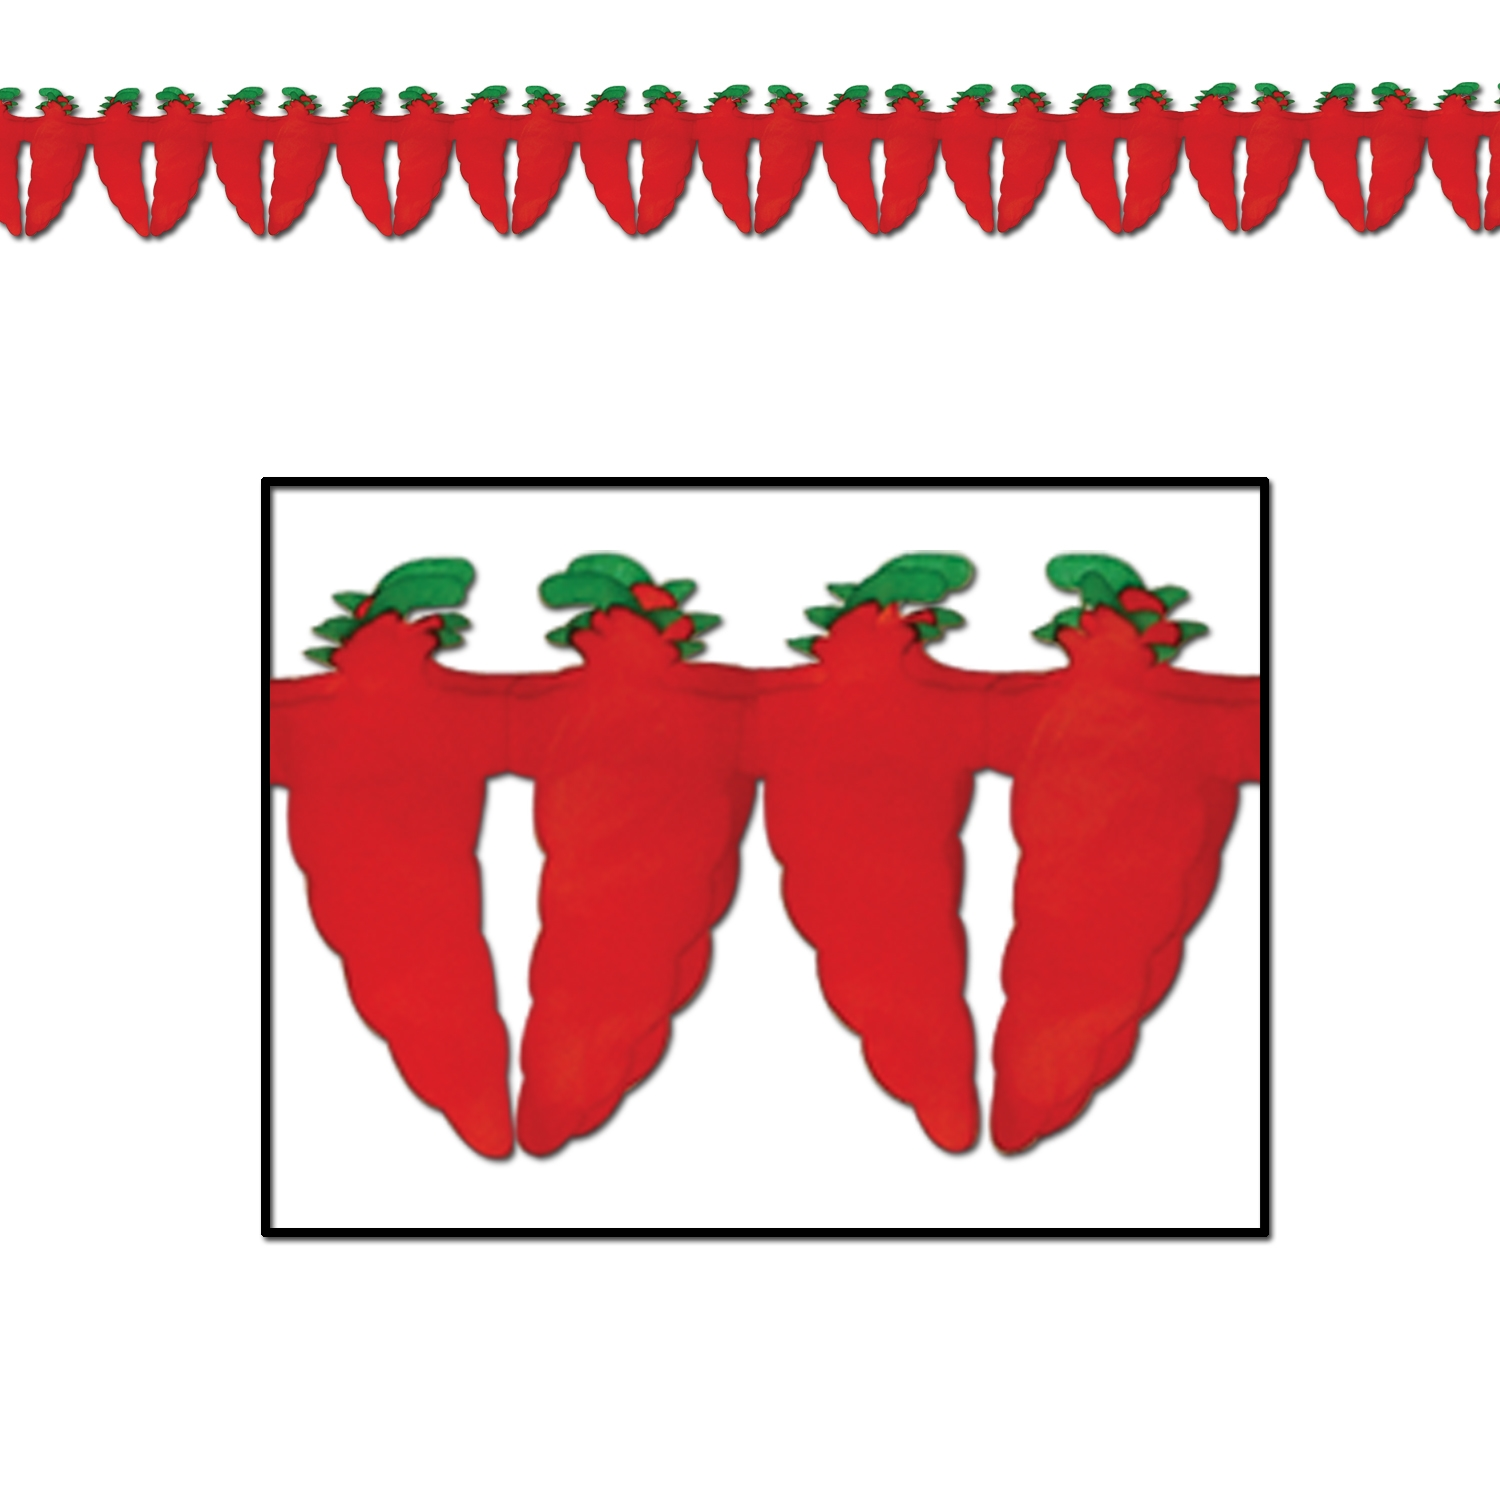 Chili Pepper Garland (Pack of 12) Chili, pepper, garland, red hot, spicy,  fiesta, meixican, international, cinco de mayo